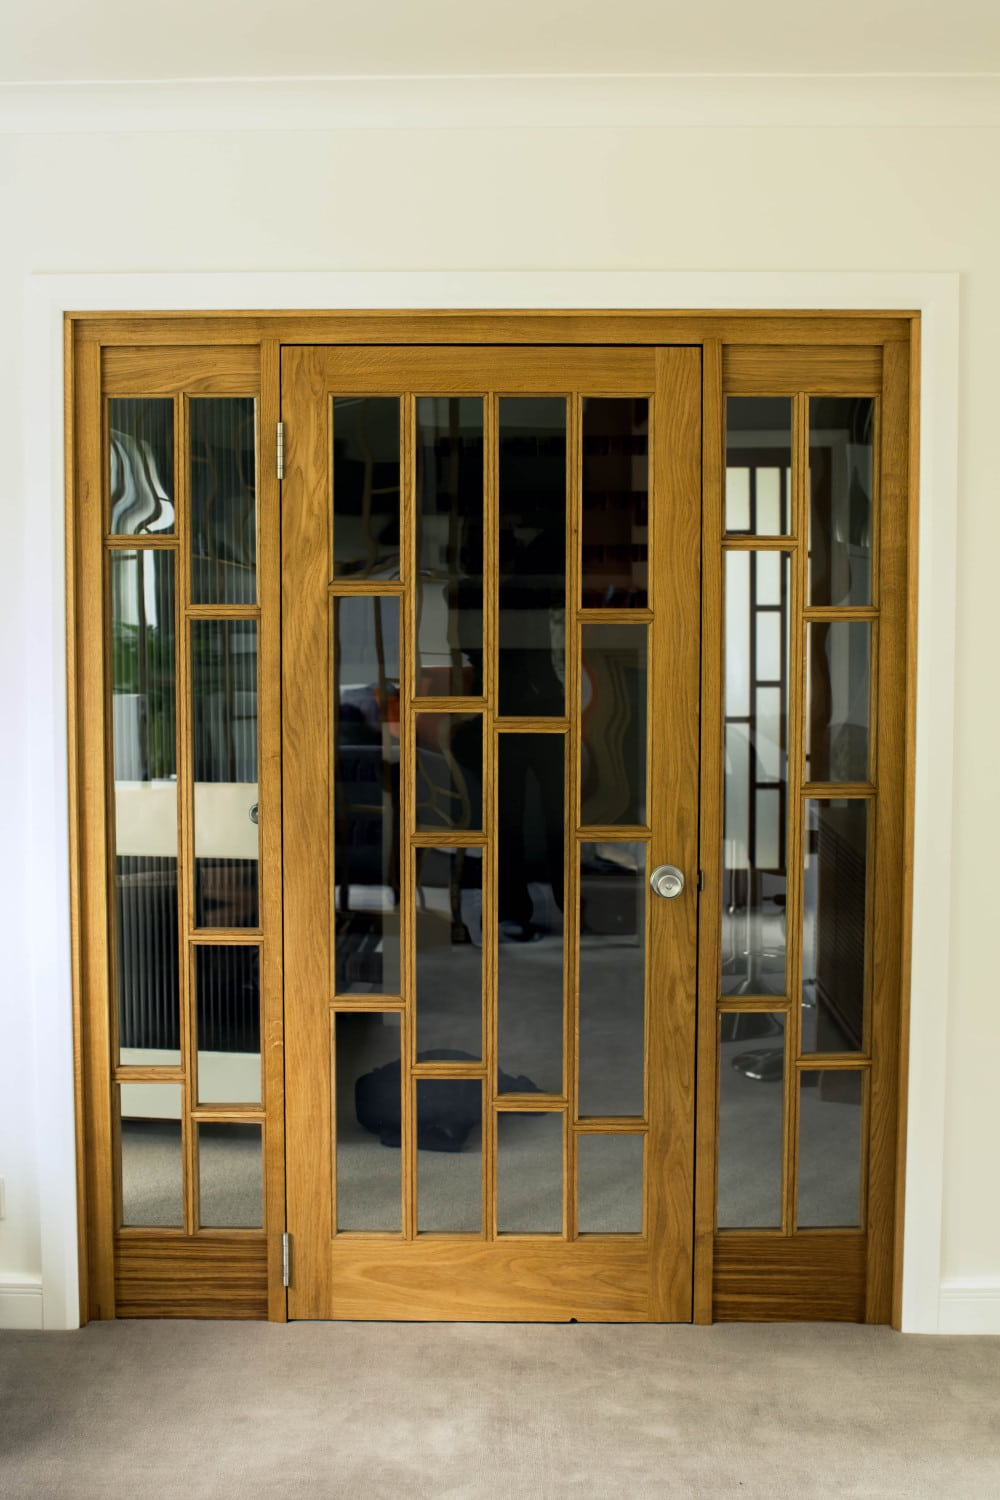 Bespoke Joinery - Dividing doors